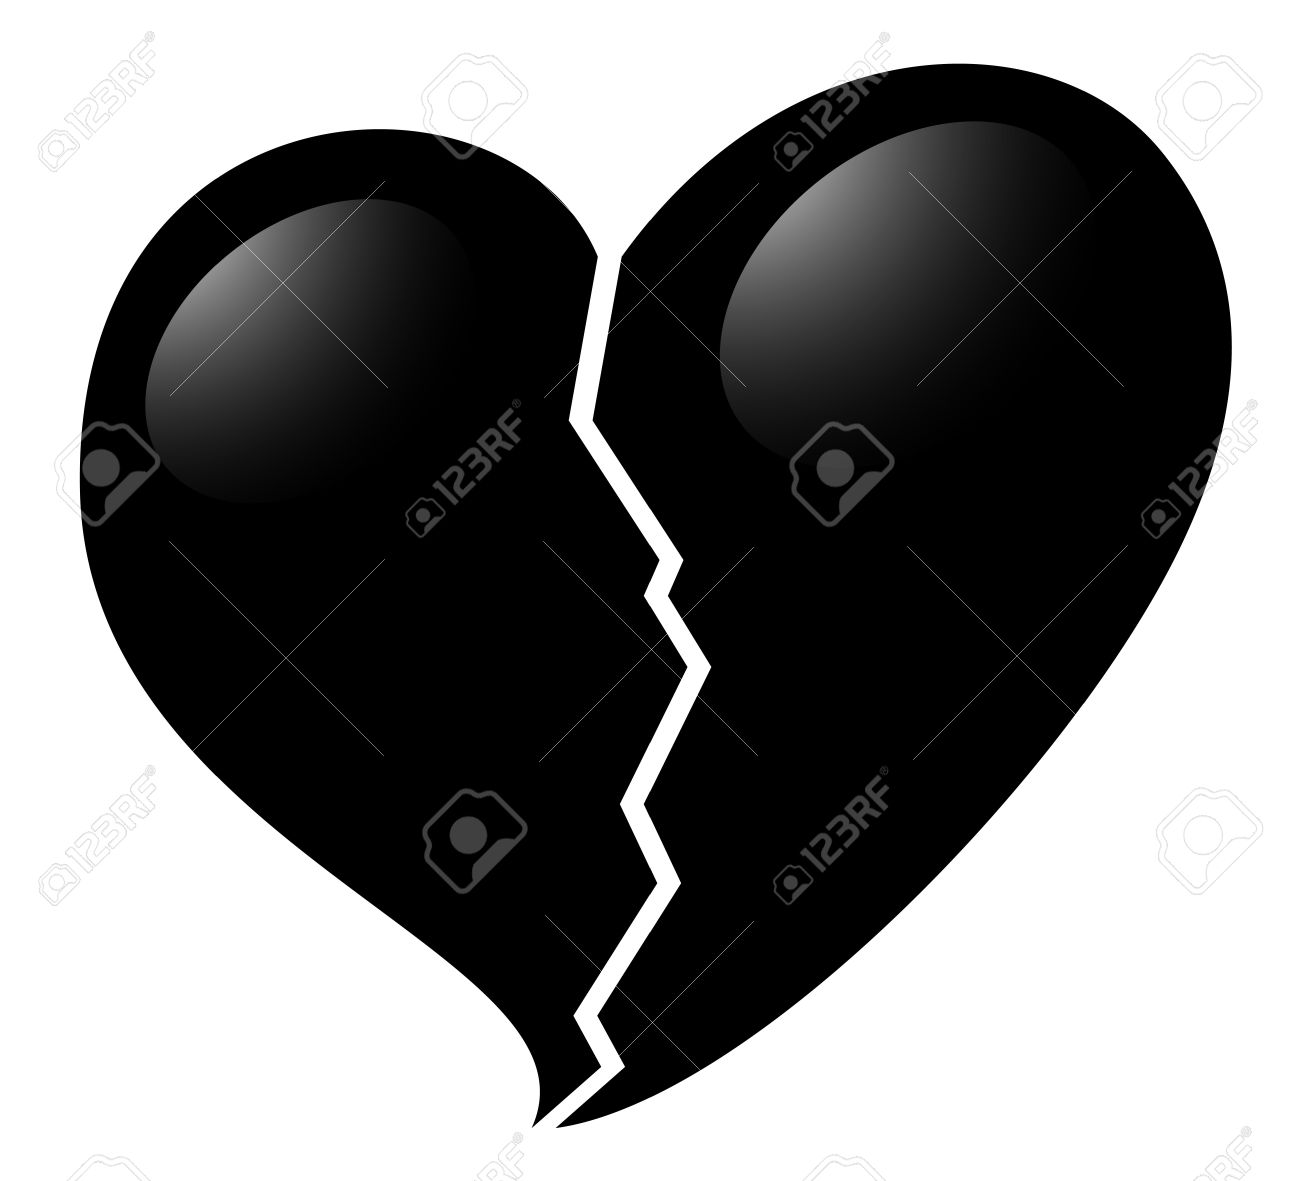 Broken Heart Icon Royalty Free Cliparts, Vectors, And Stock ...